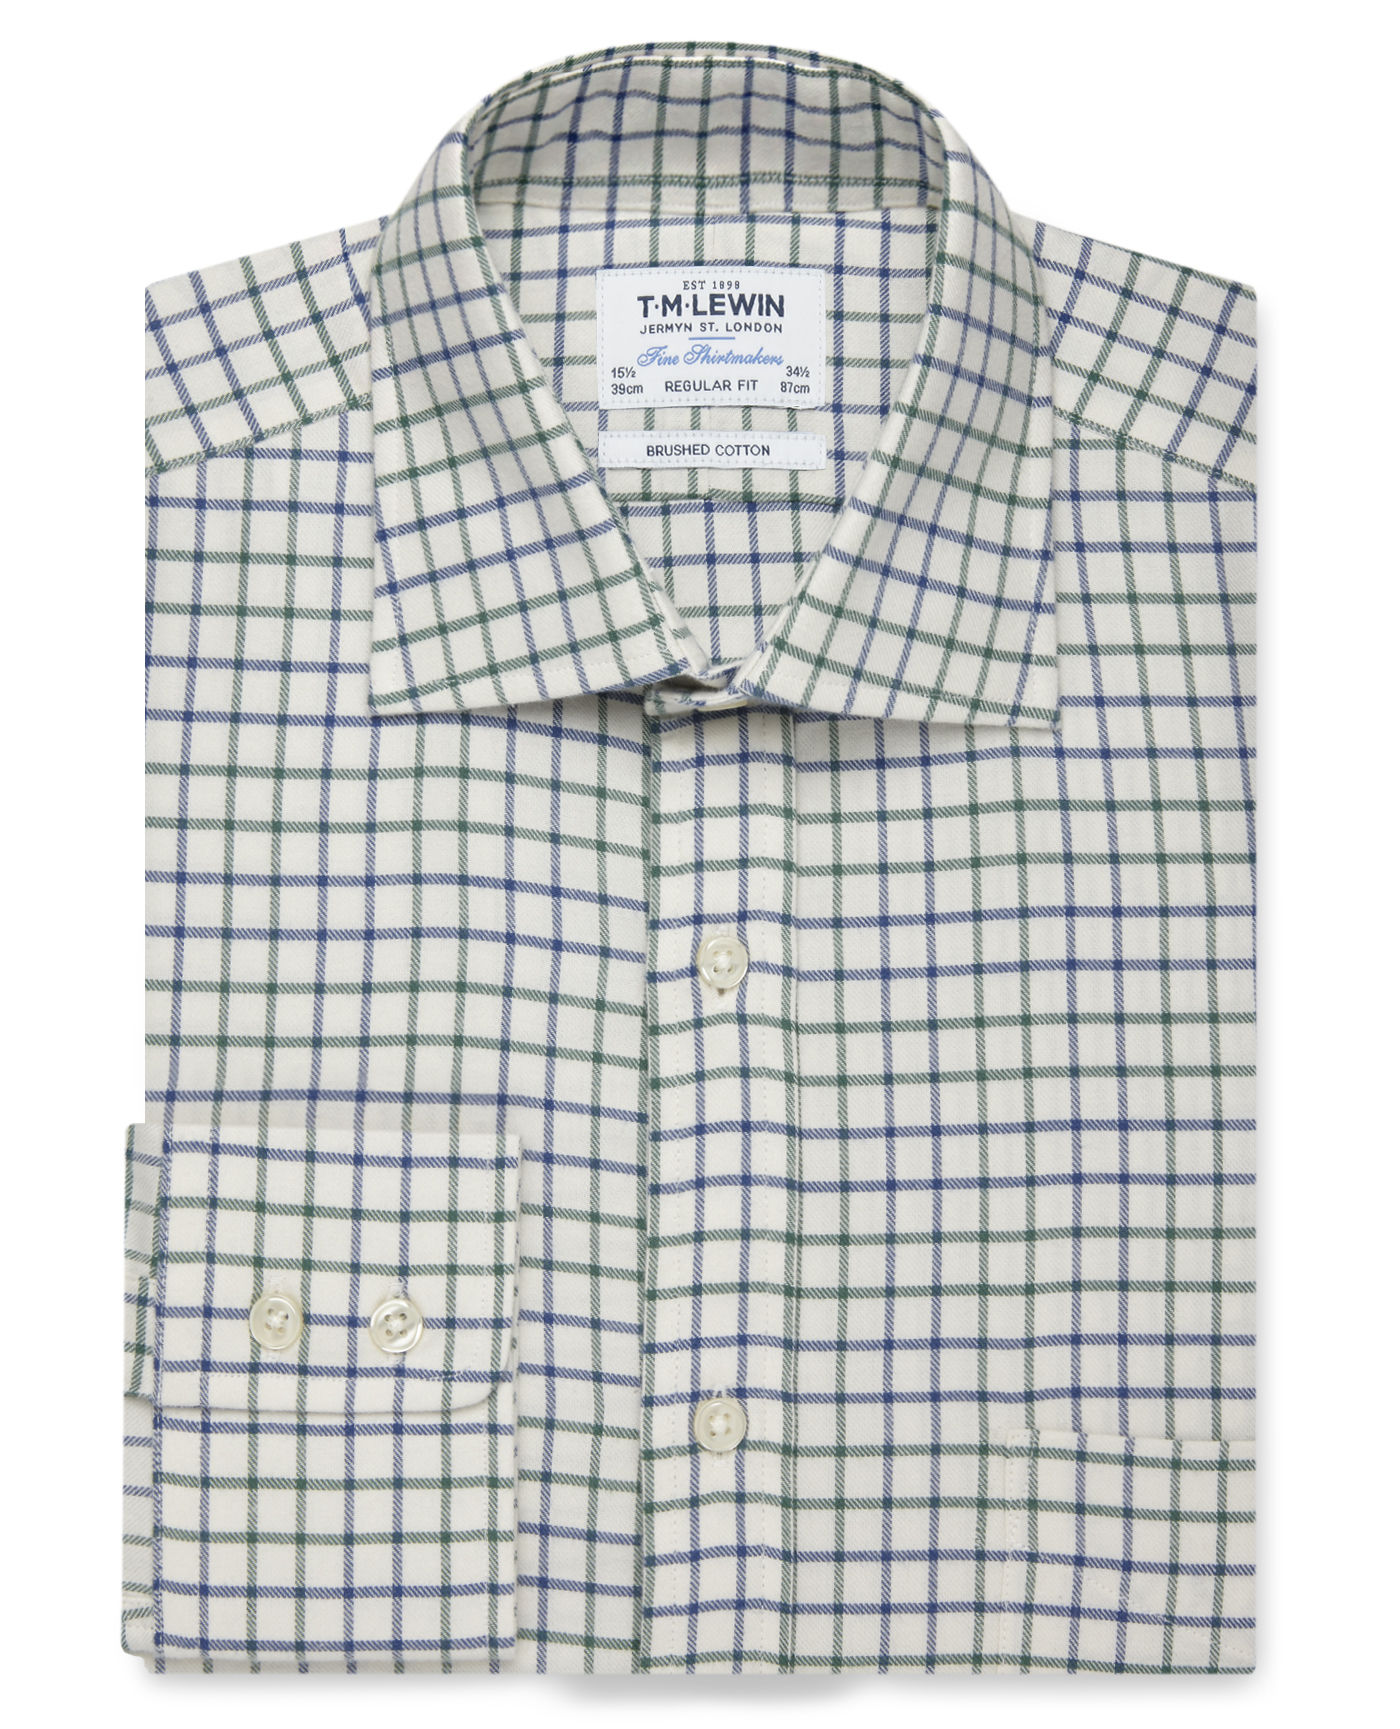 T.M.Lewin Brushed Cotton Cream Green Large Check Regular Fit Button Cuff Shirt